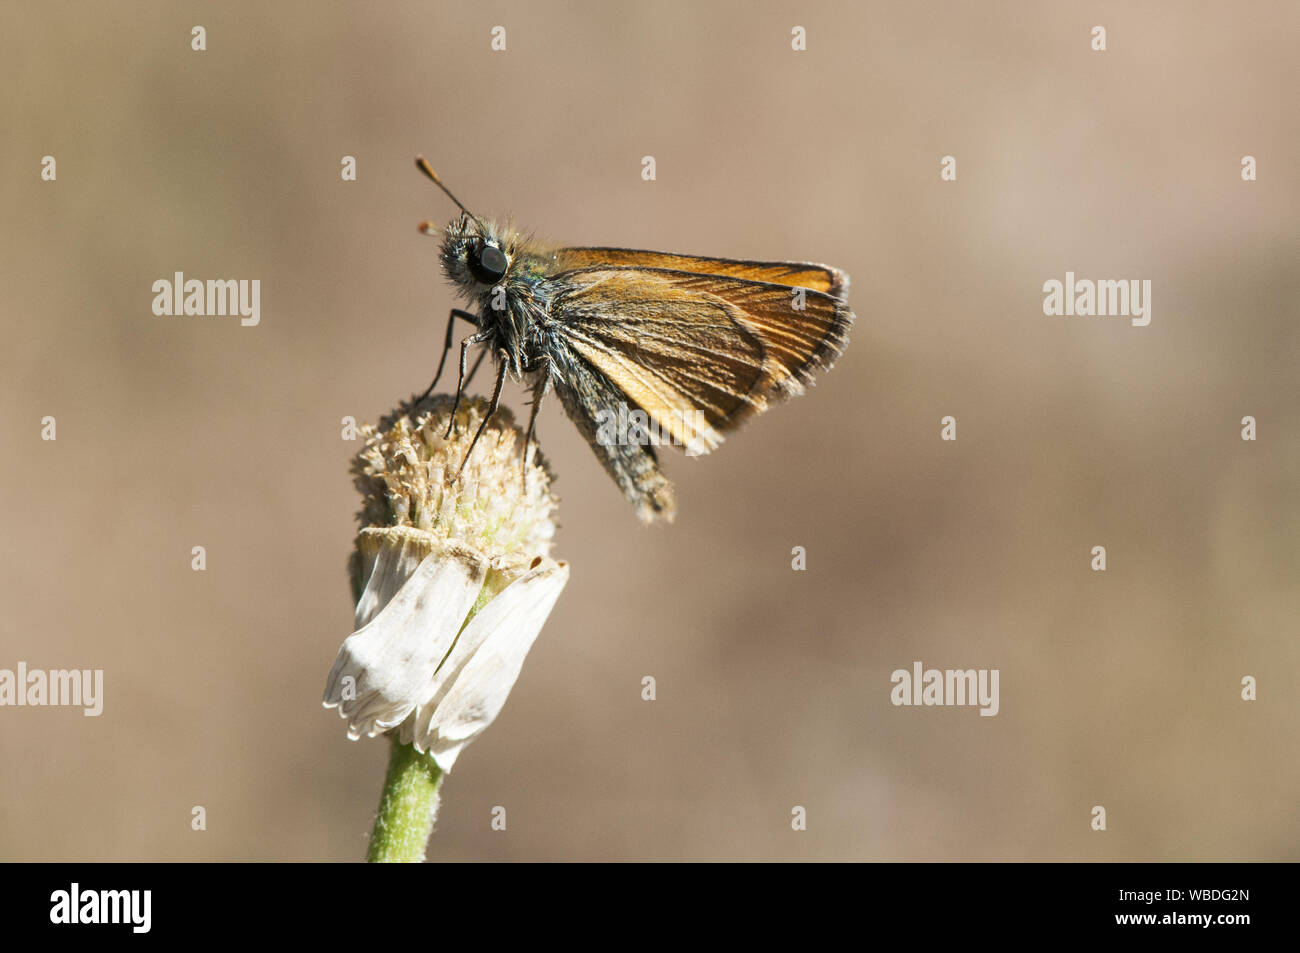 Thymelicus The Lulworth skipper butterfly of the family Hesperidae very common in the fields of Andalucia brown background orange natural light Stock Photo